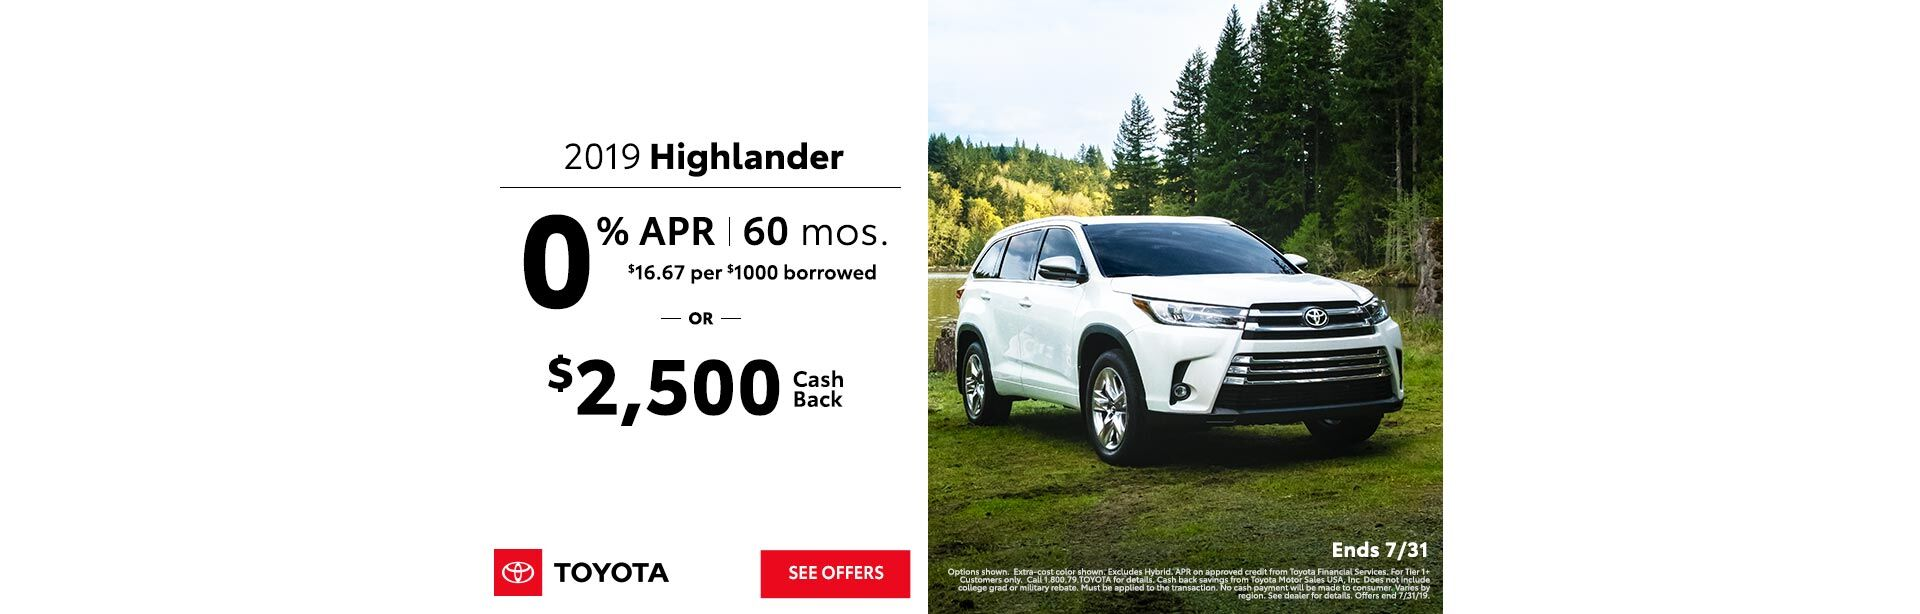 2019 July DEN Dear Toyota Highlander